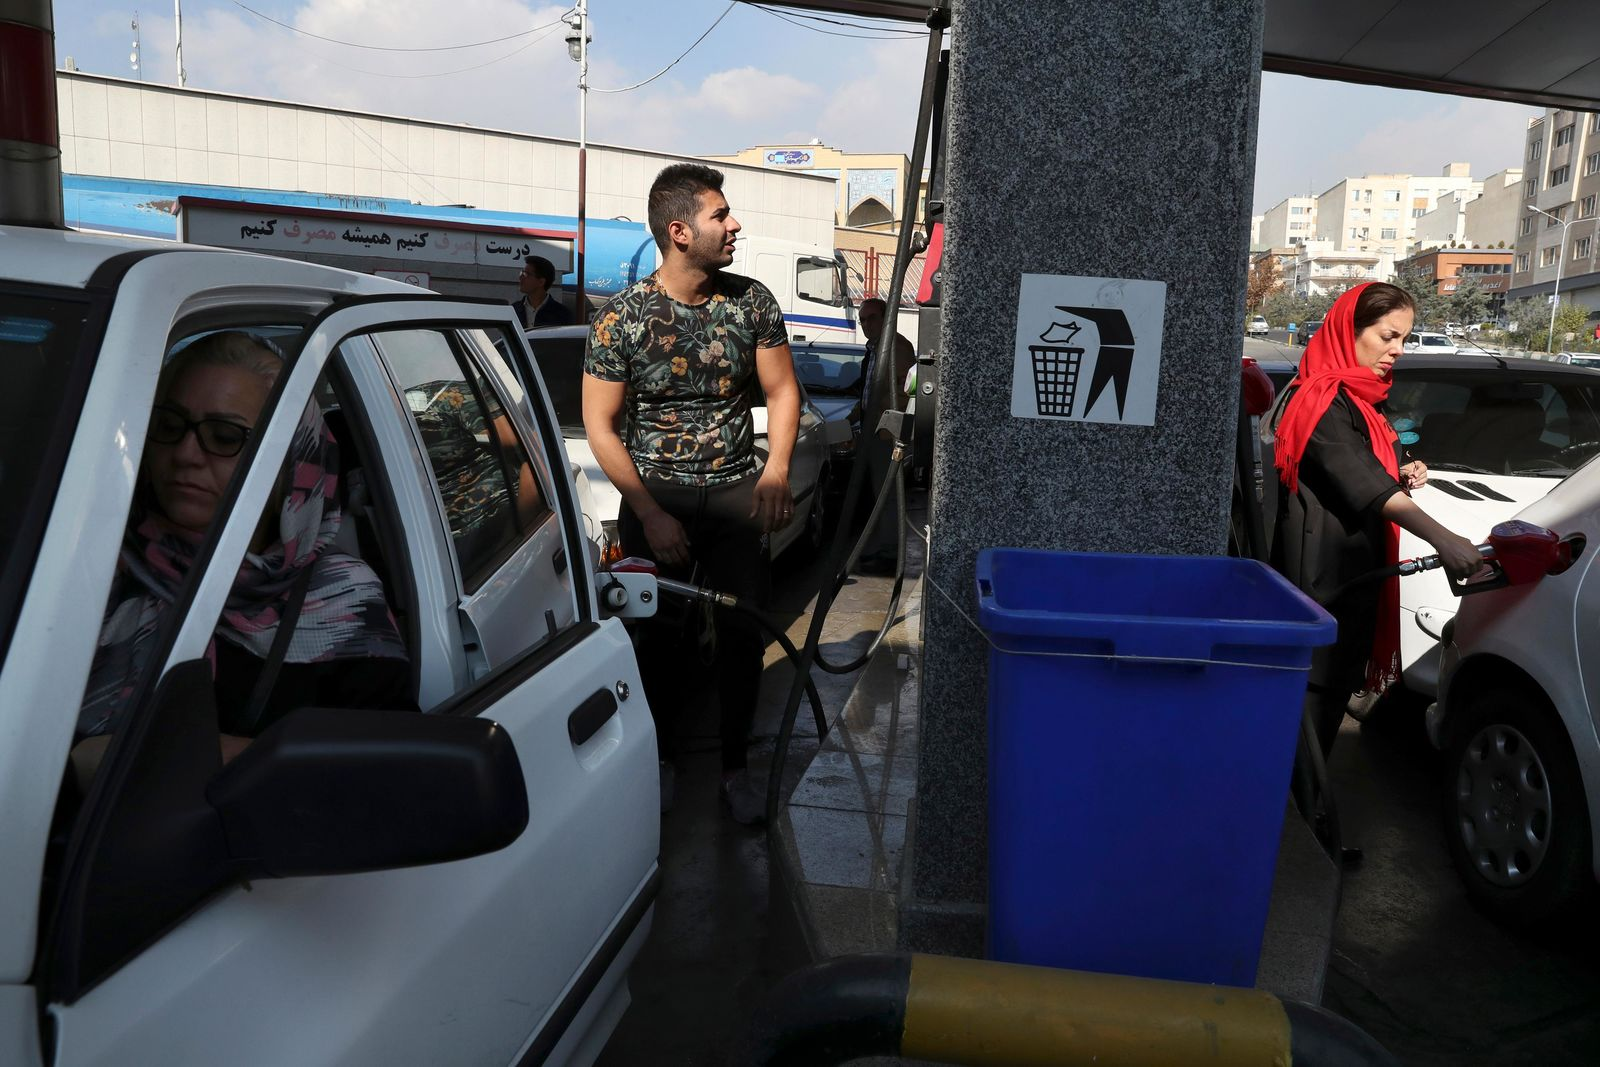 People fill their cars at a gas station in Tehran, Iran, Friday, Nov. 15, 2019. Authorities have imposed rationing and increased the prices of fuel.{ } (AP Photo/Vahid Salemi)